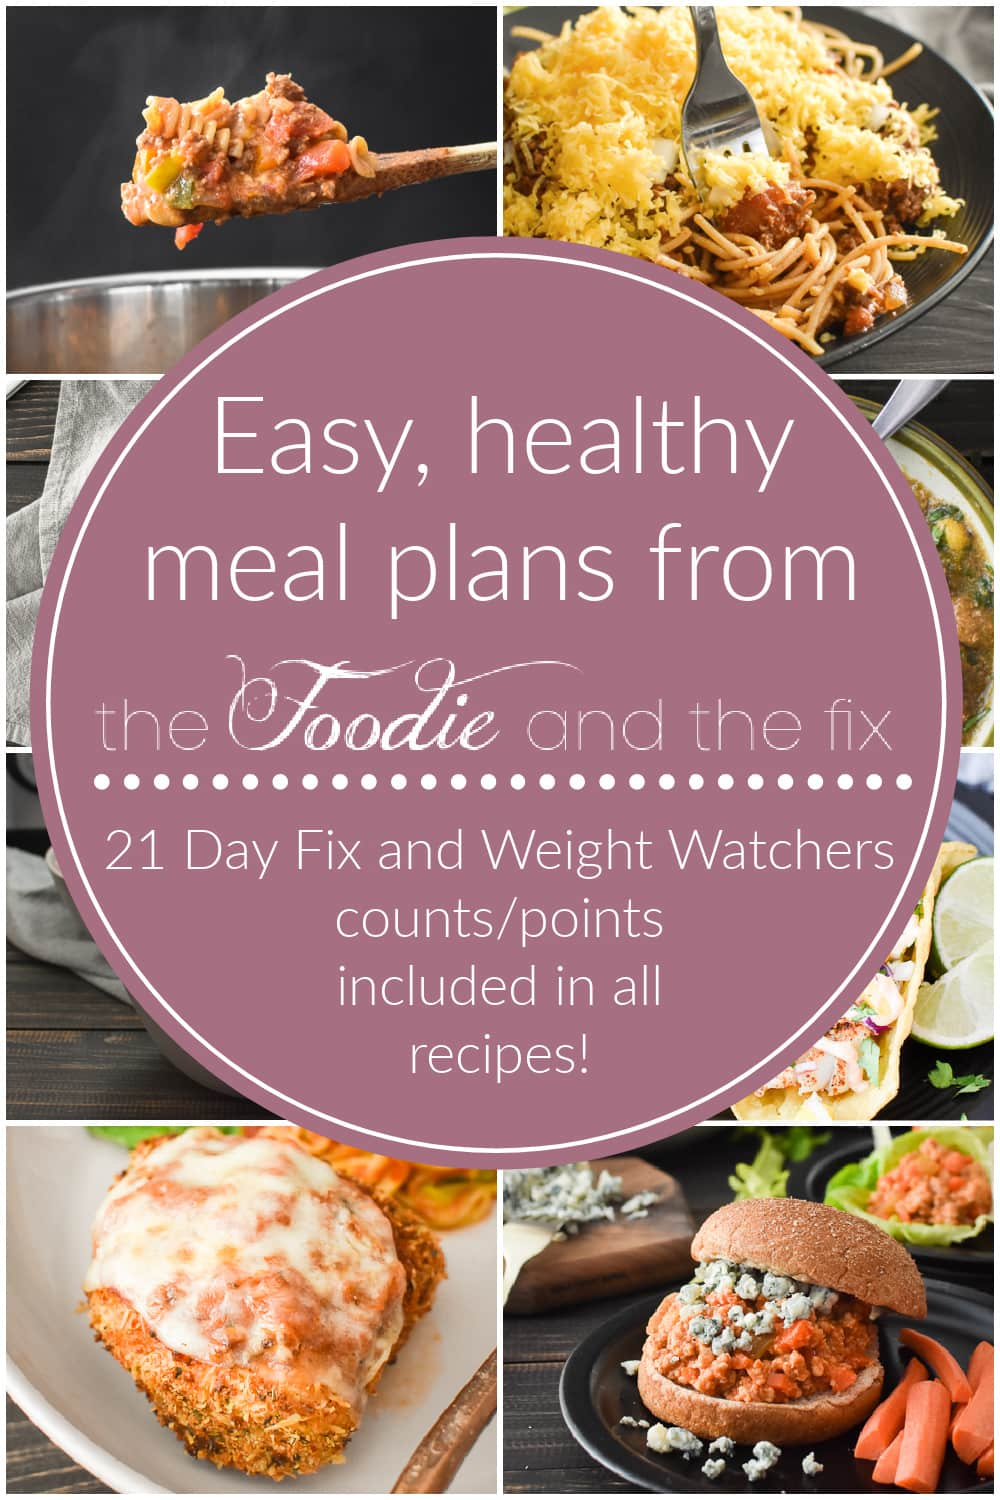 Healthy 21 Day Fix Meal Plans | Weight Watchers Meal Plans